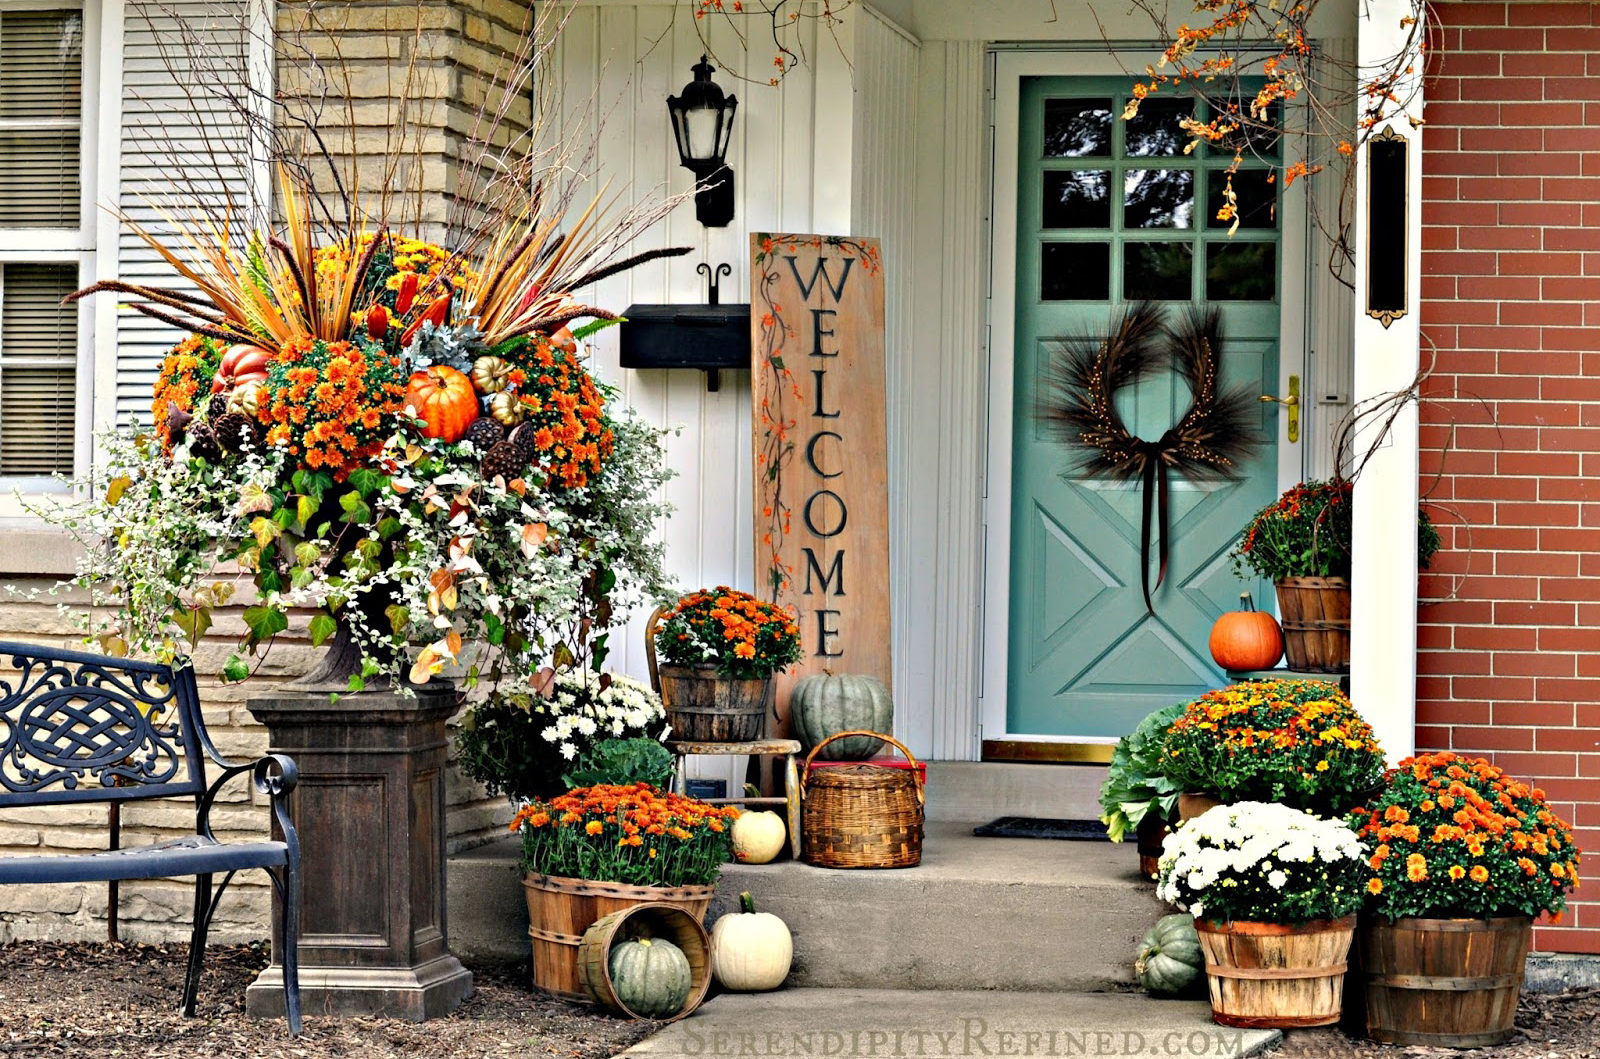 30 Fall Porch Decorating Ideas - Ways to Decorate Your ...